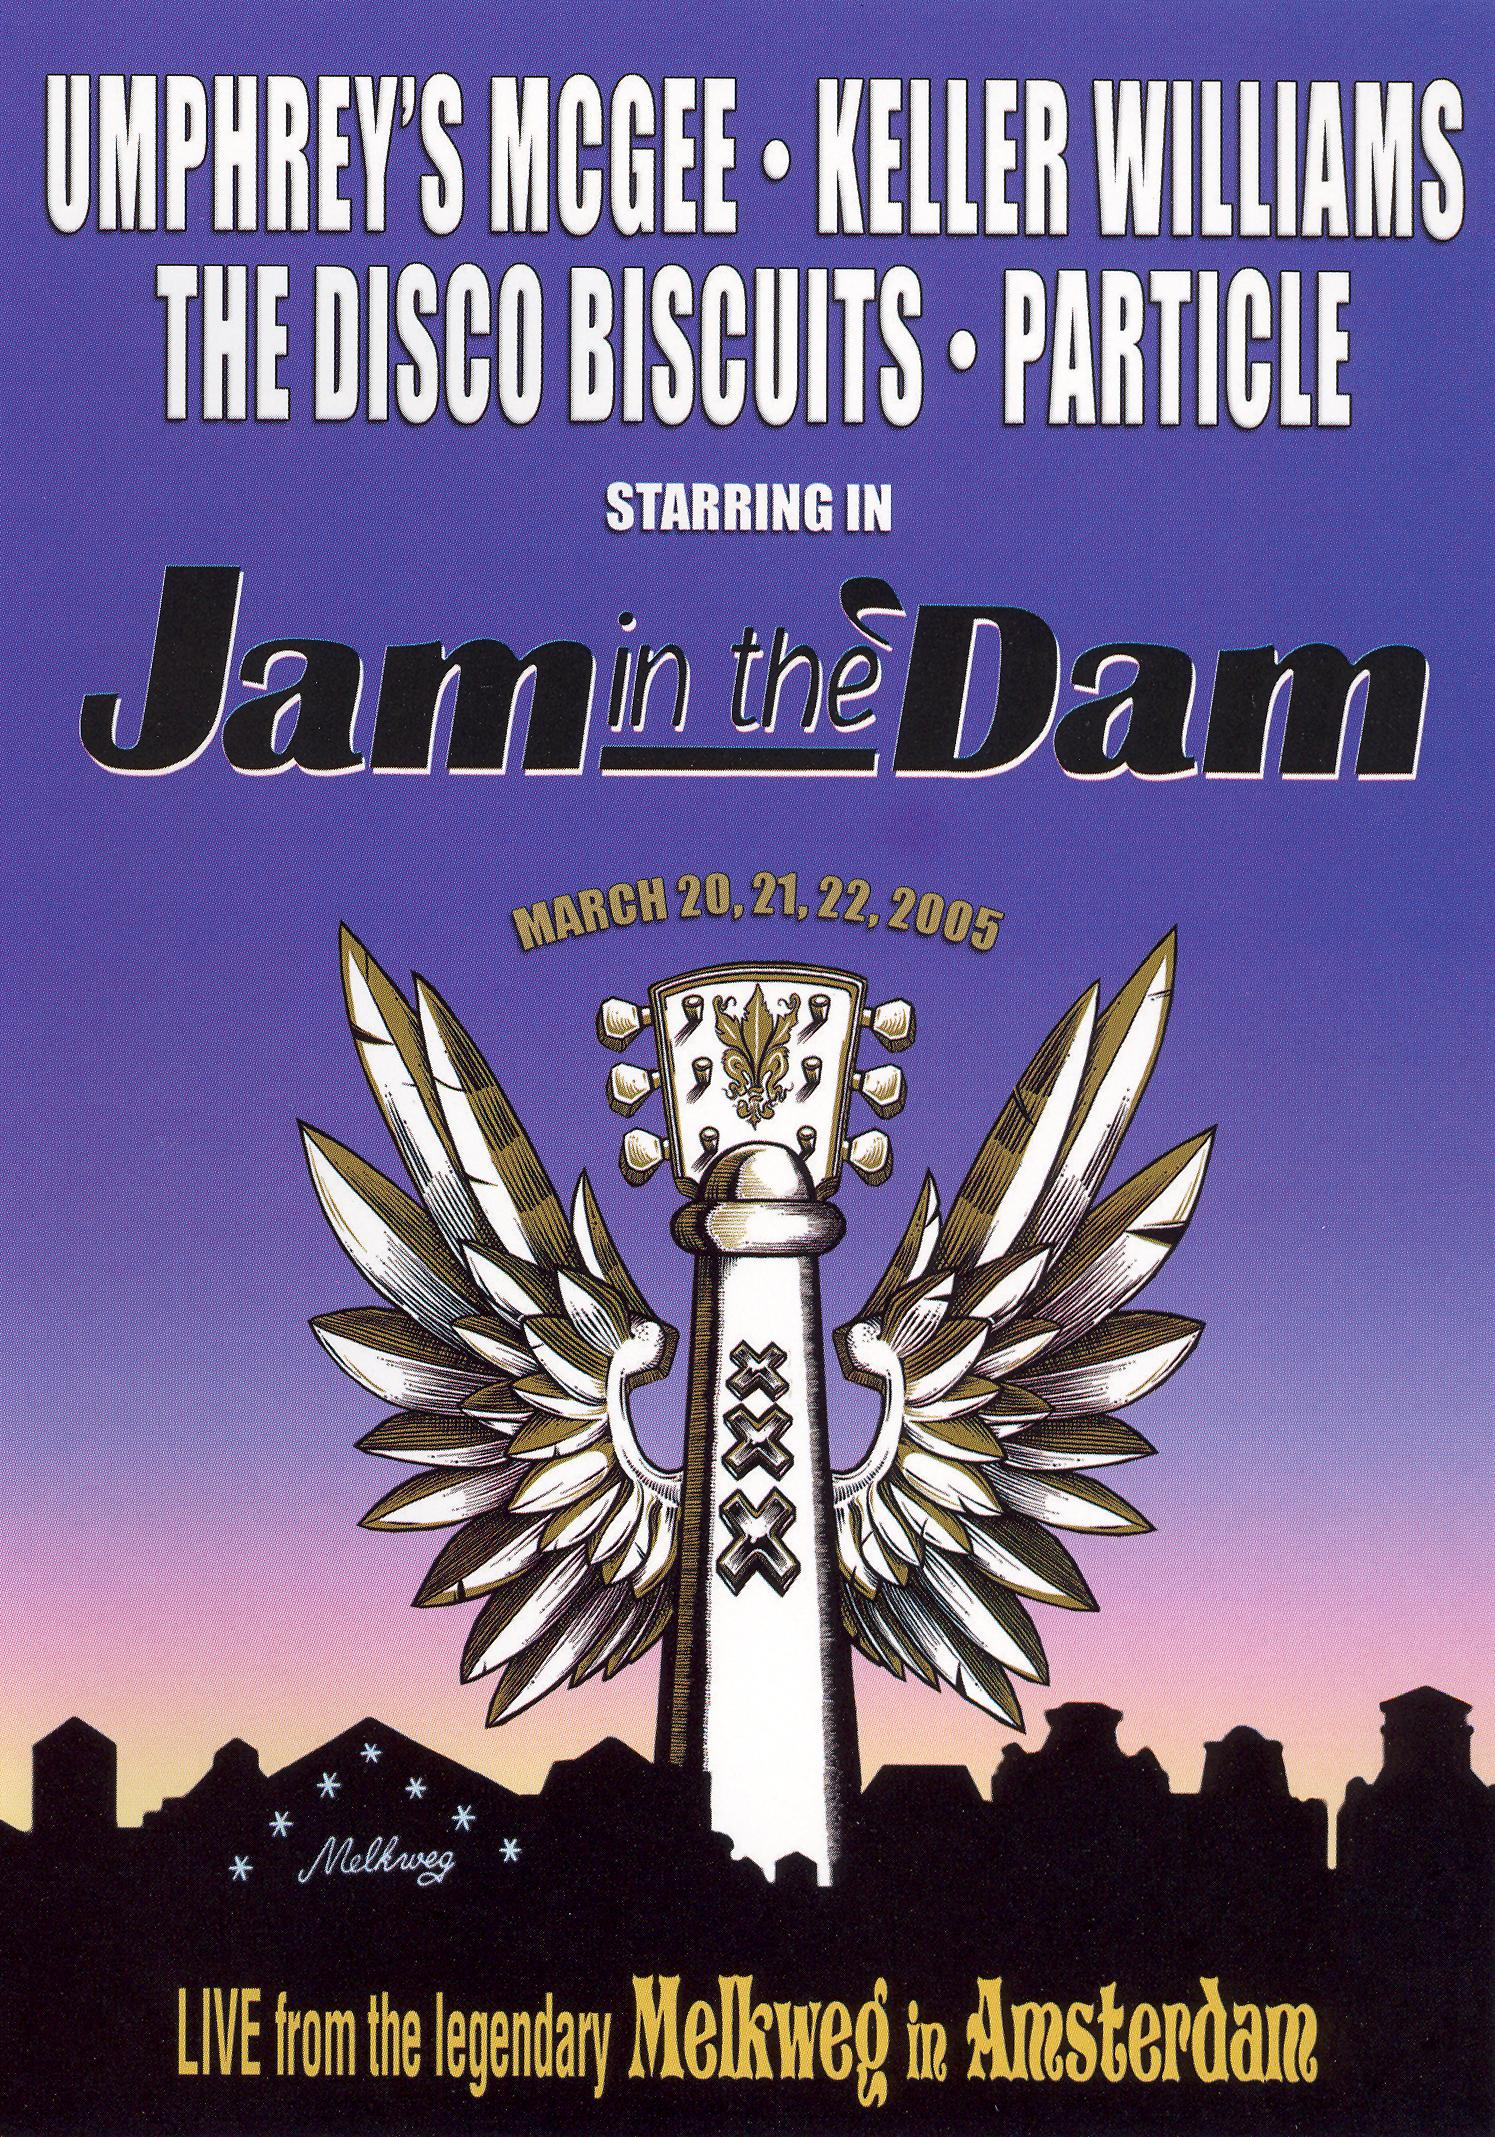 Umphrey's McGee/Keller Williams/The Disco Biscuits/Particle: Jam in the Dam